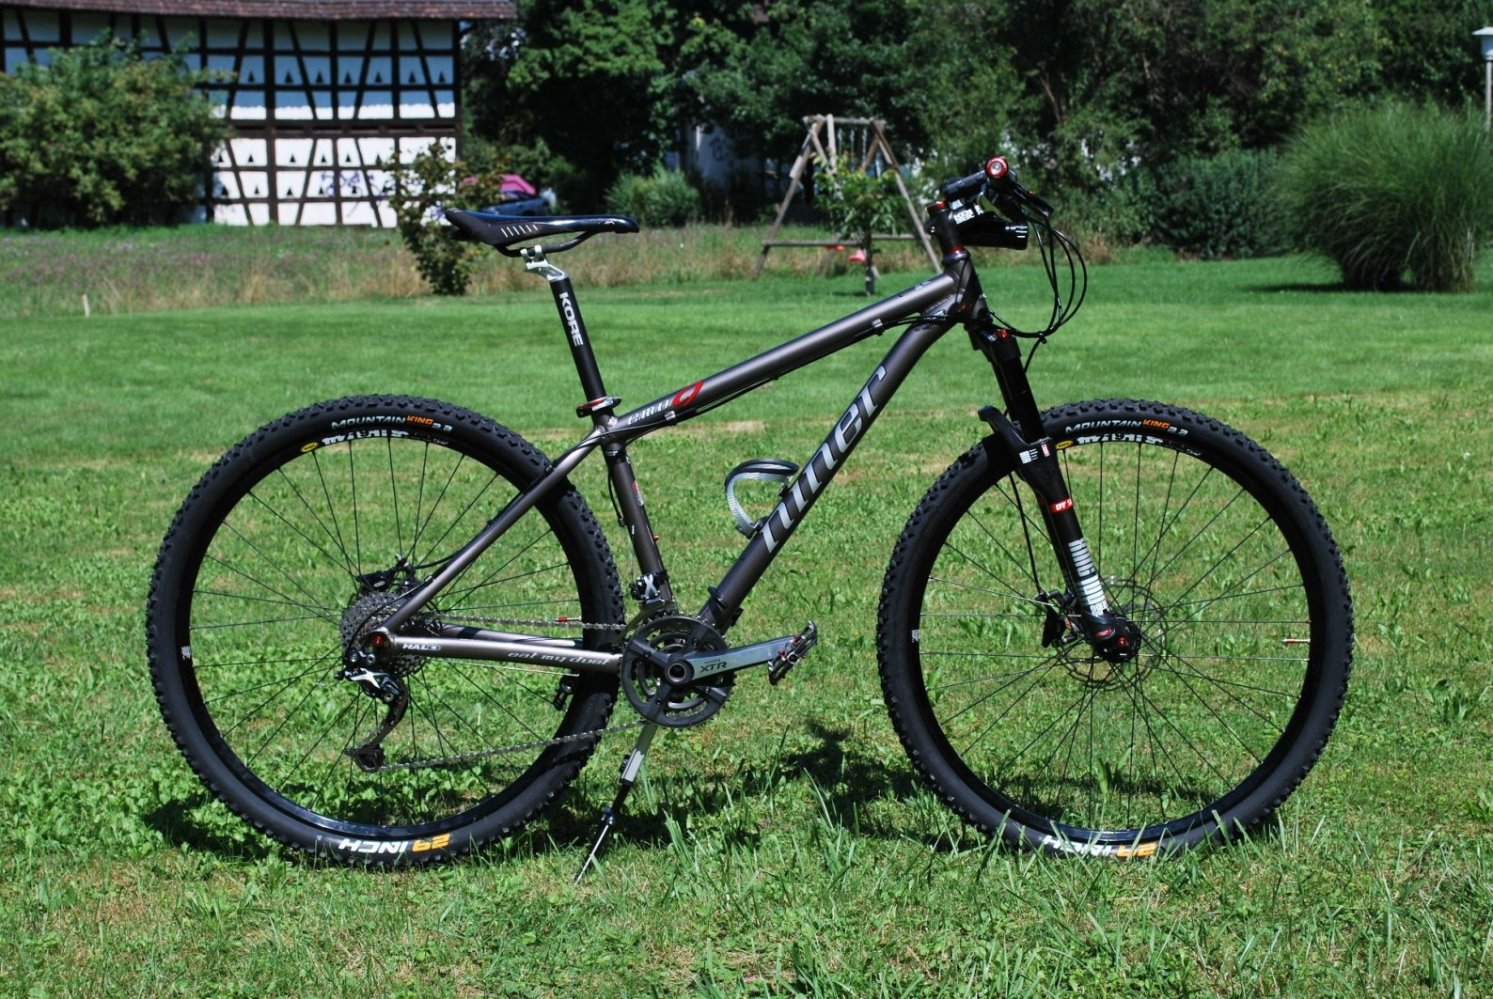 Post Pictures of your 29er-dsc_0676.jpg